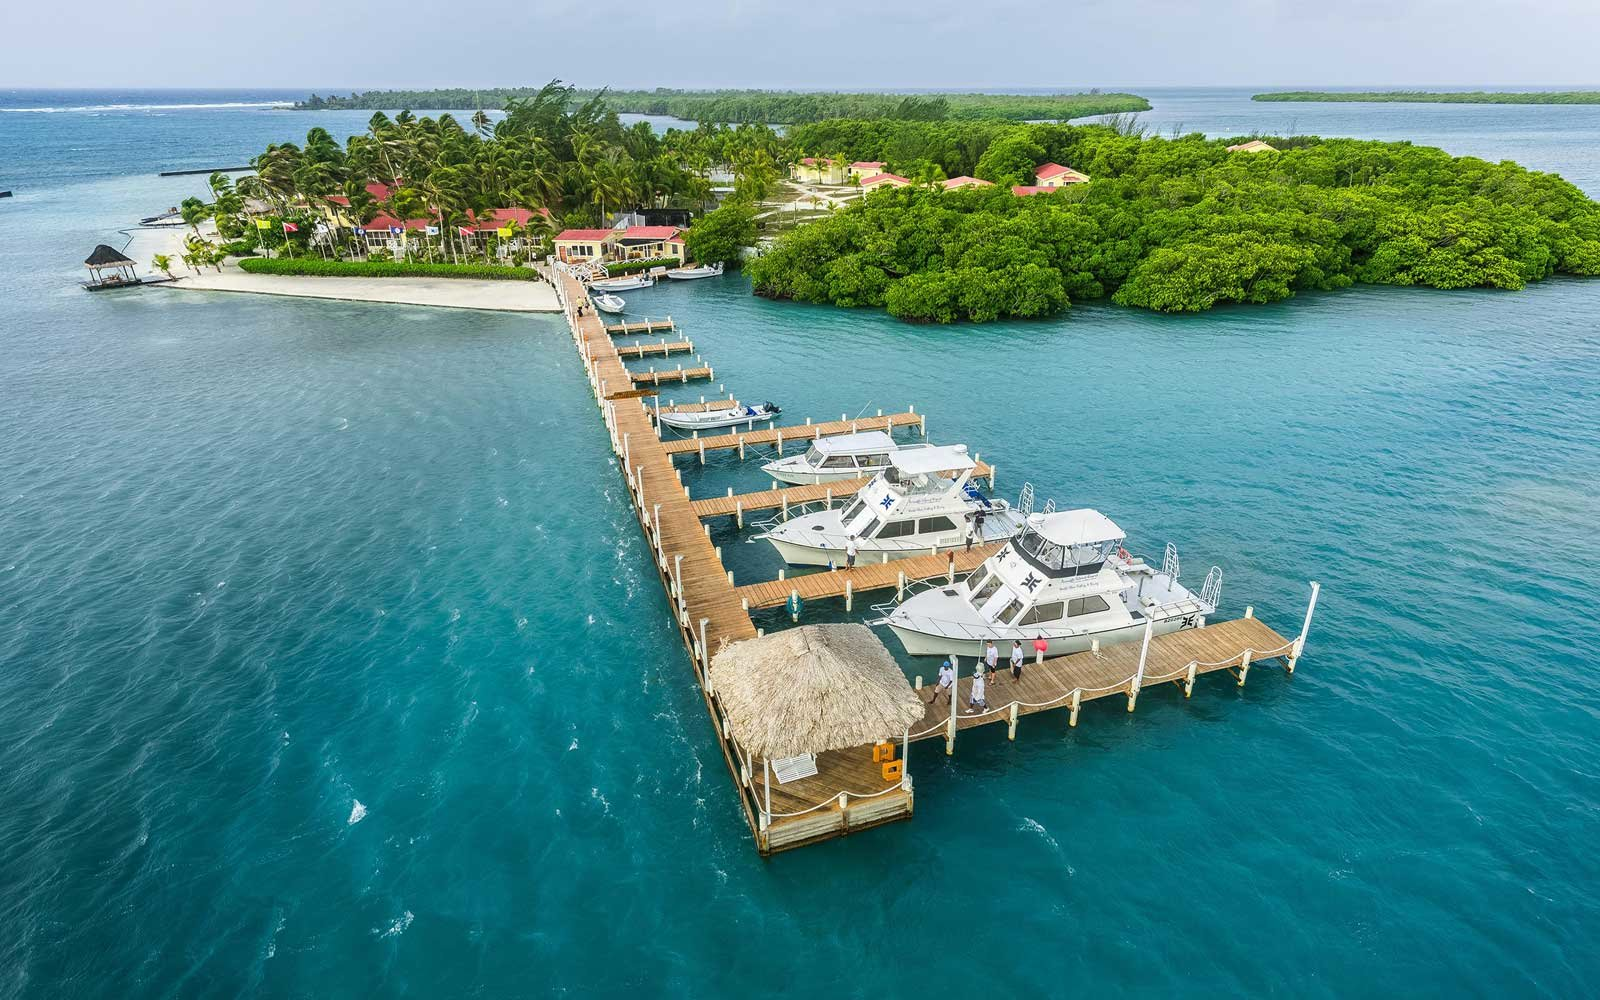 Turneffe Island Resort near Belize